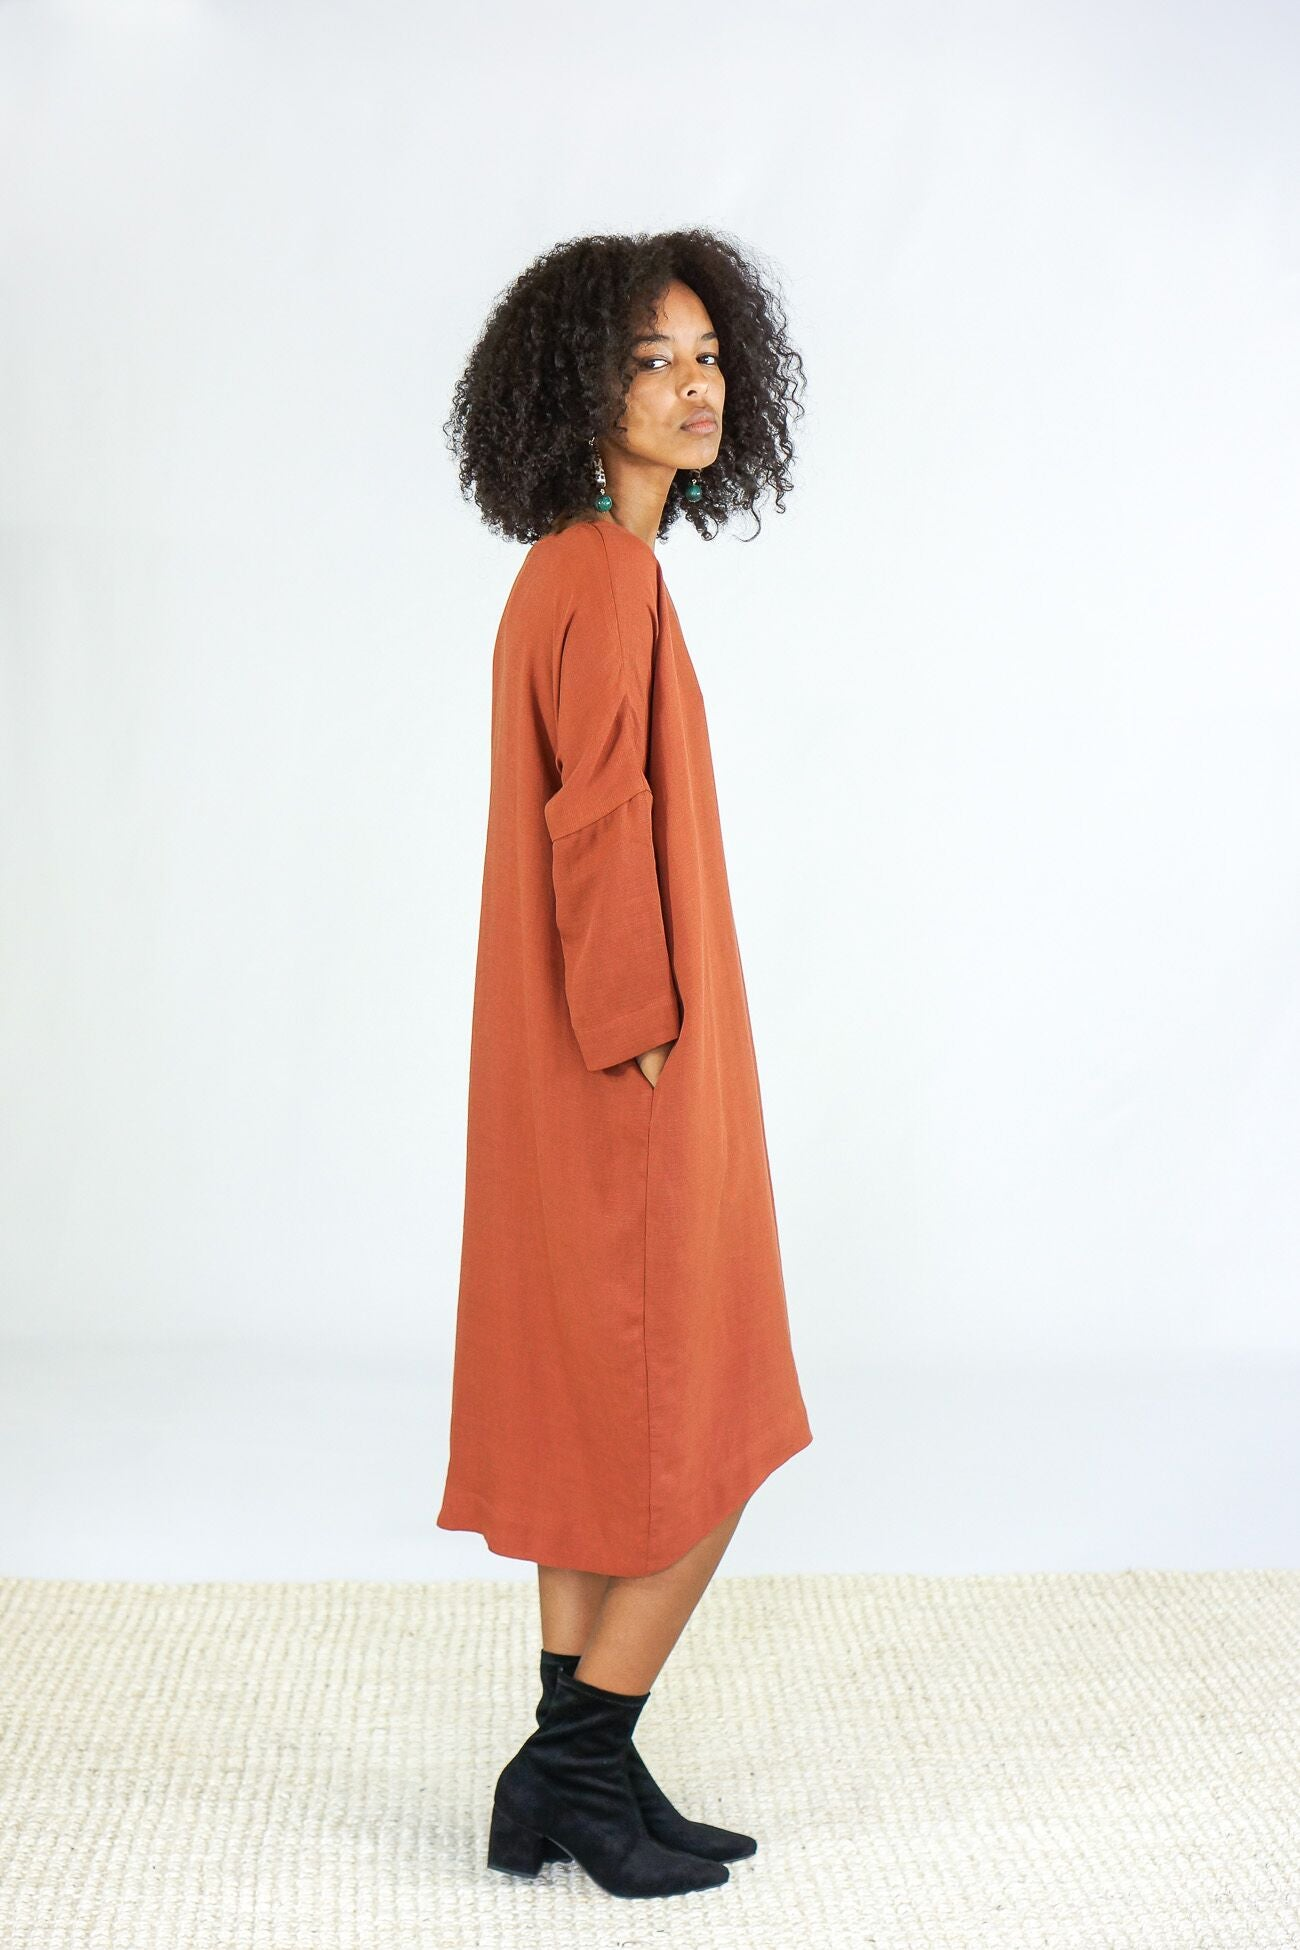 Black Crane Linen Bud Dress in Brick